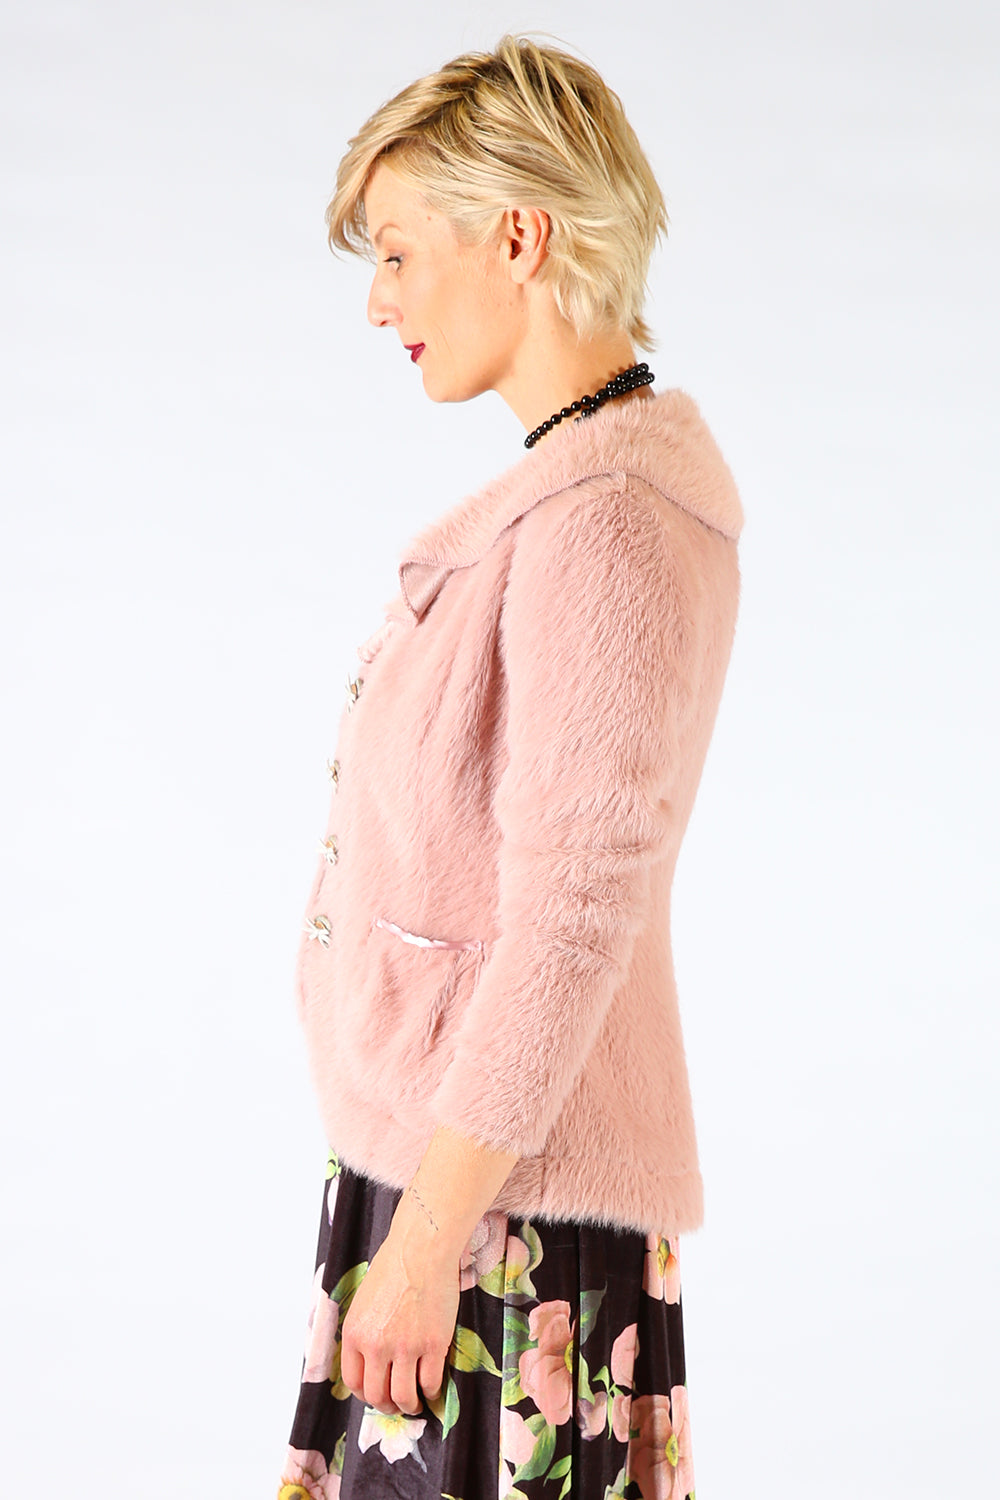 Bewitched Betty Jacket, Annah Stretton AW19, Pink Faux Fur Jacket, Shot on Model